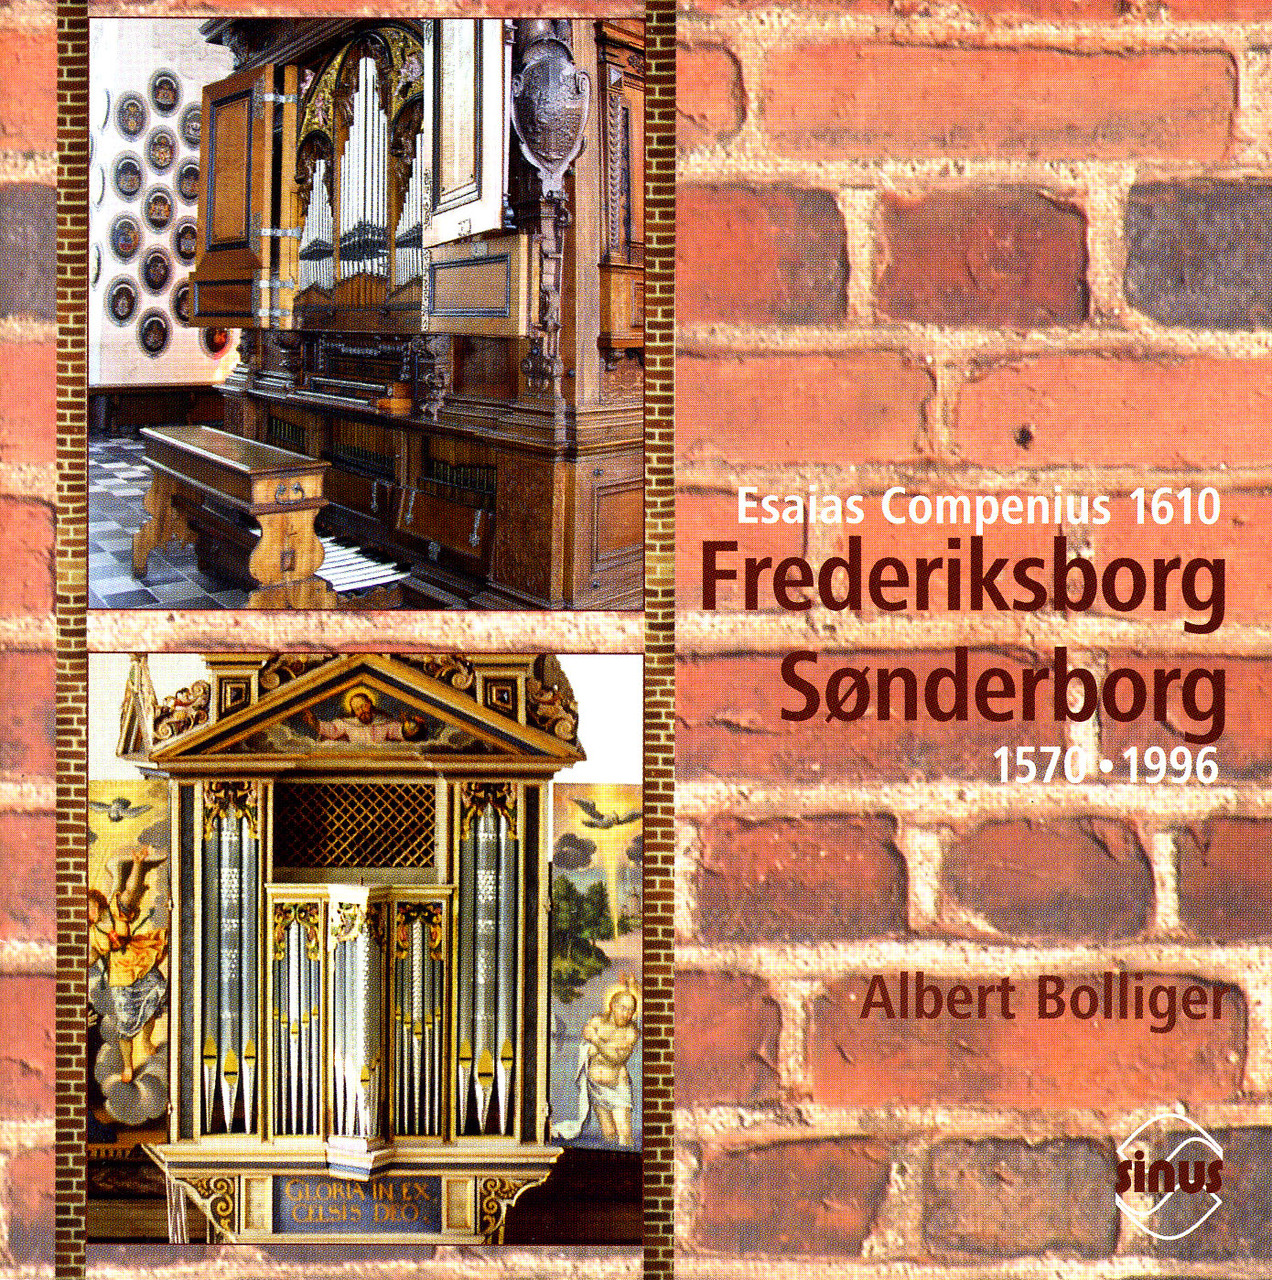 A New Recording of the 1610 Compenius Organ & the Dorothea Organ in Sonderborg